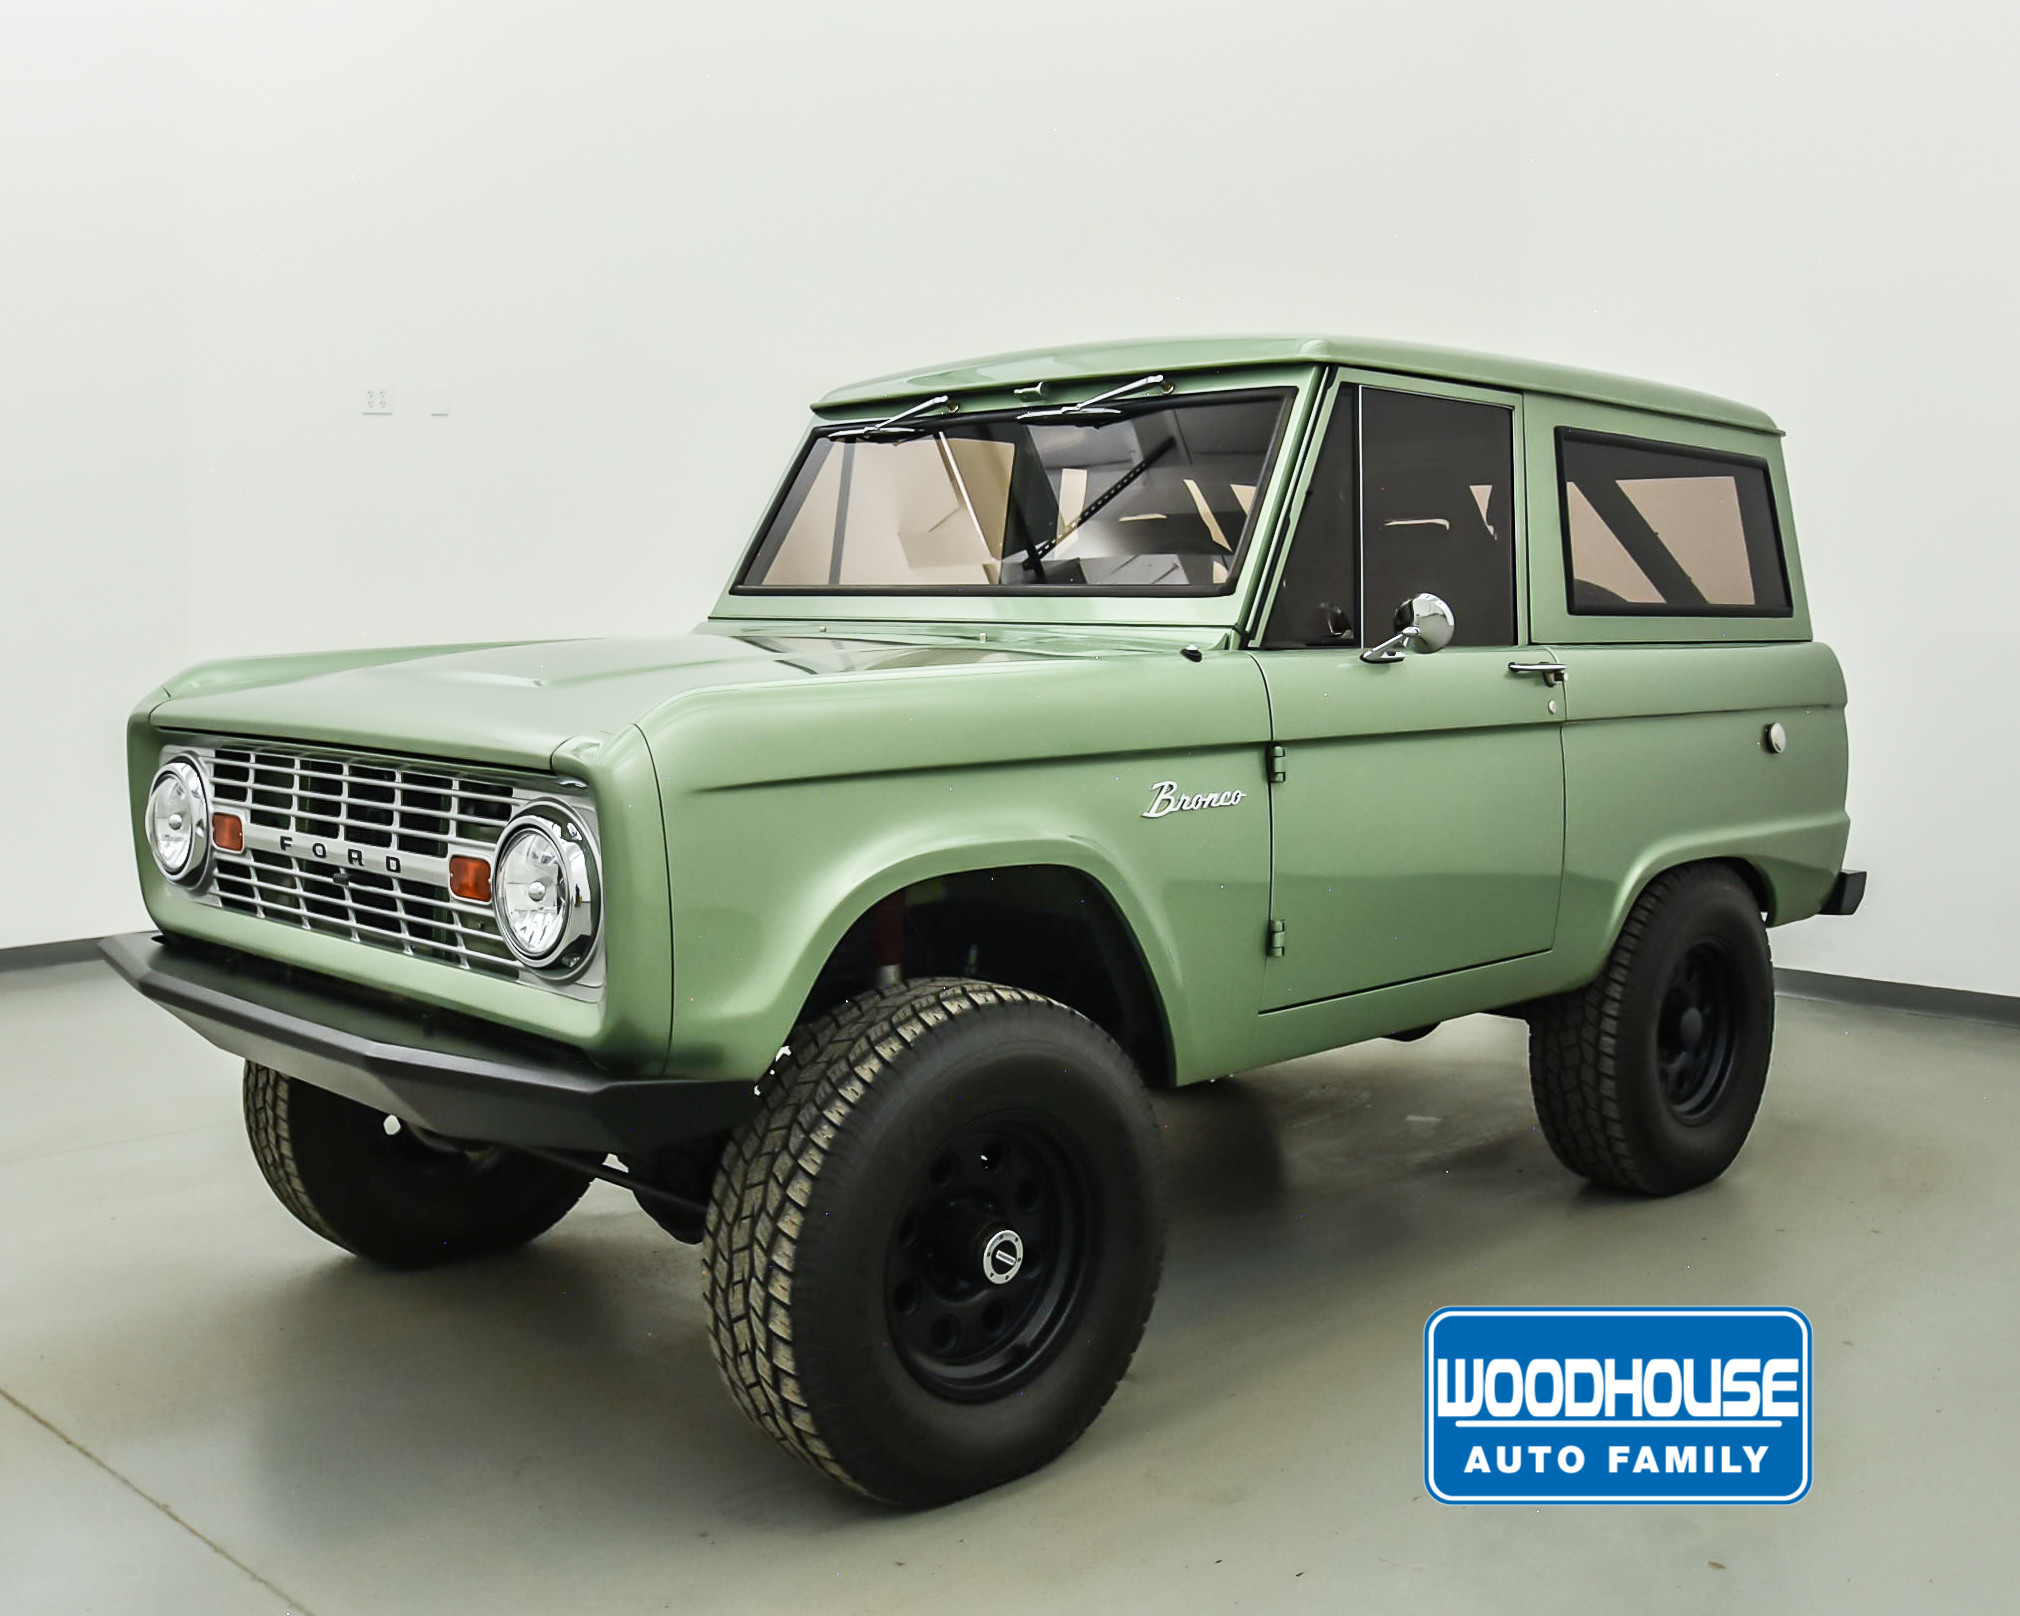 Woodhouse | Used 1966 Ford Bronco For Sale | Porsche (Omaha)